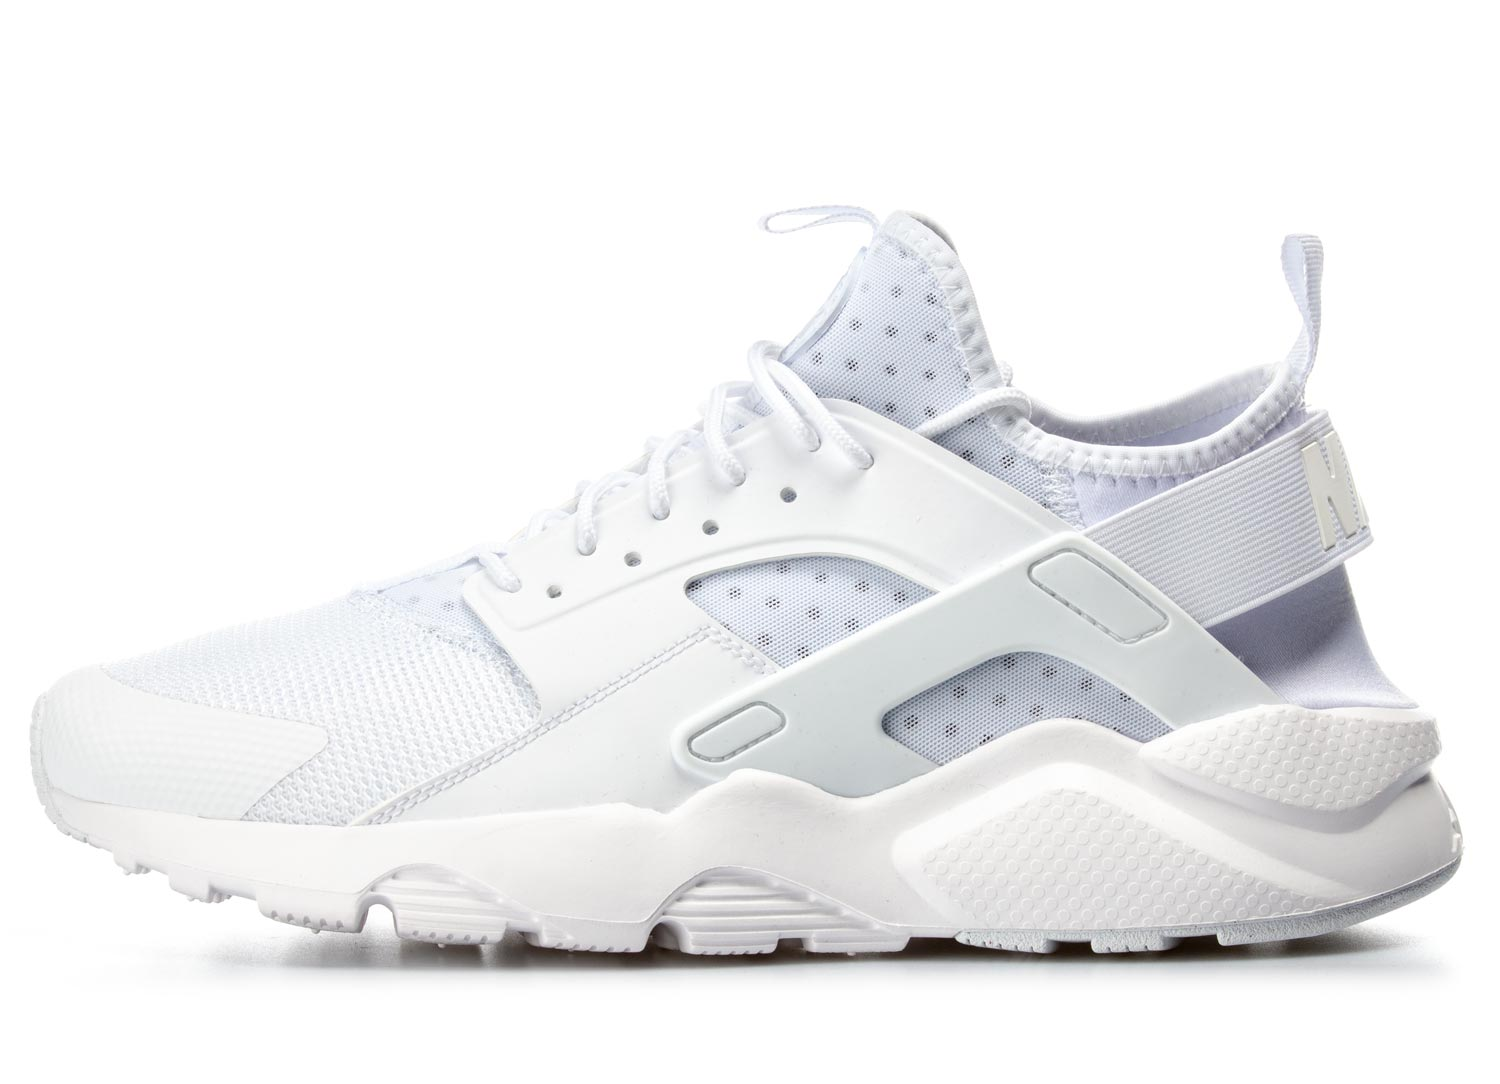 NIKE AIR HUARACHE RUN ULTRA 819685-101 Λευκό